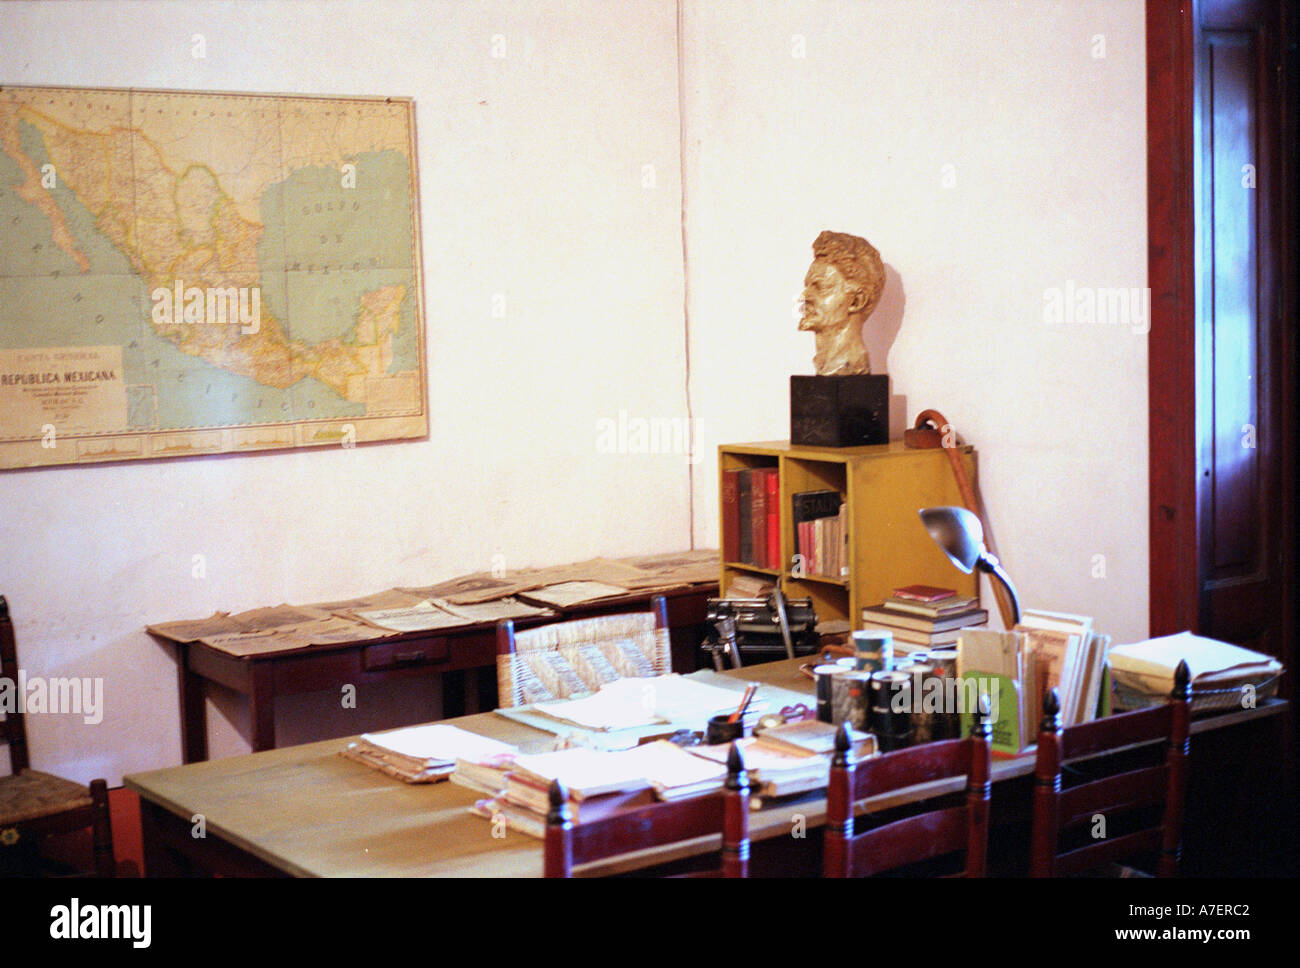 Mexico. Leon Trotsky's study, the place of his assasination. - Stock Image